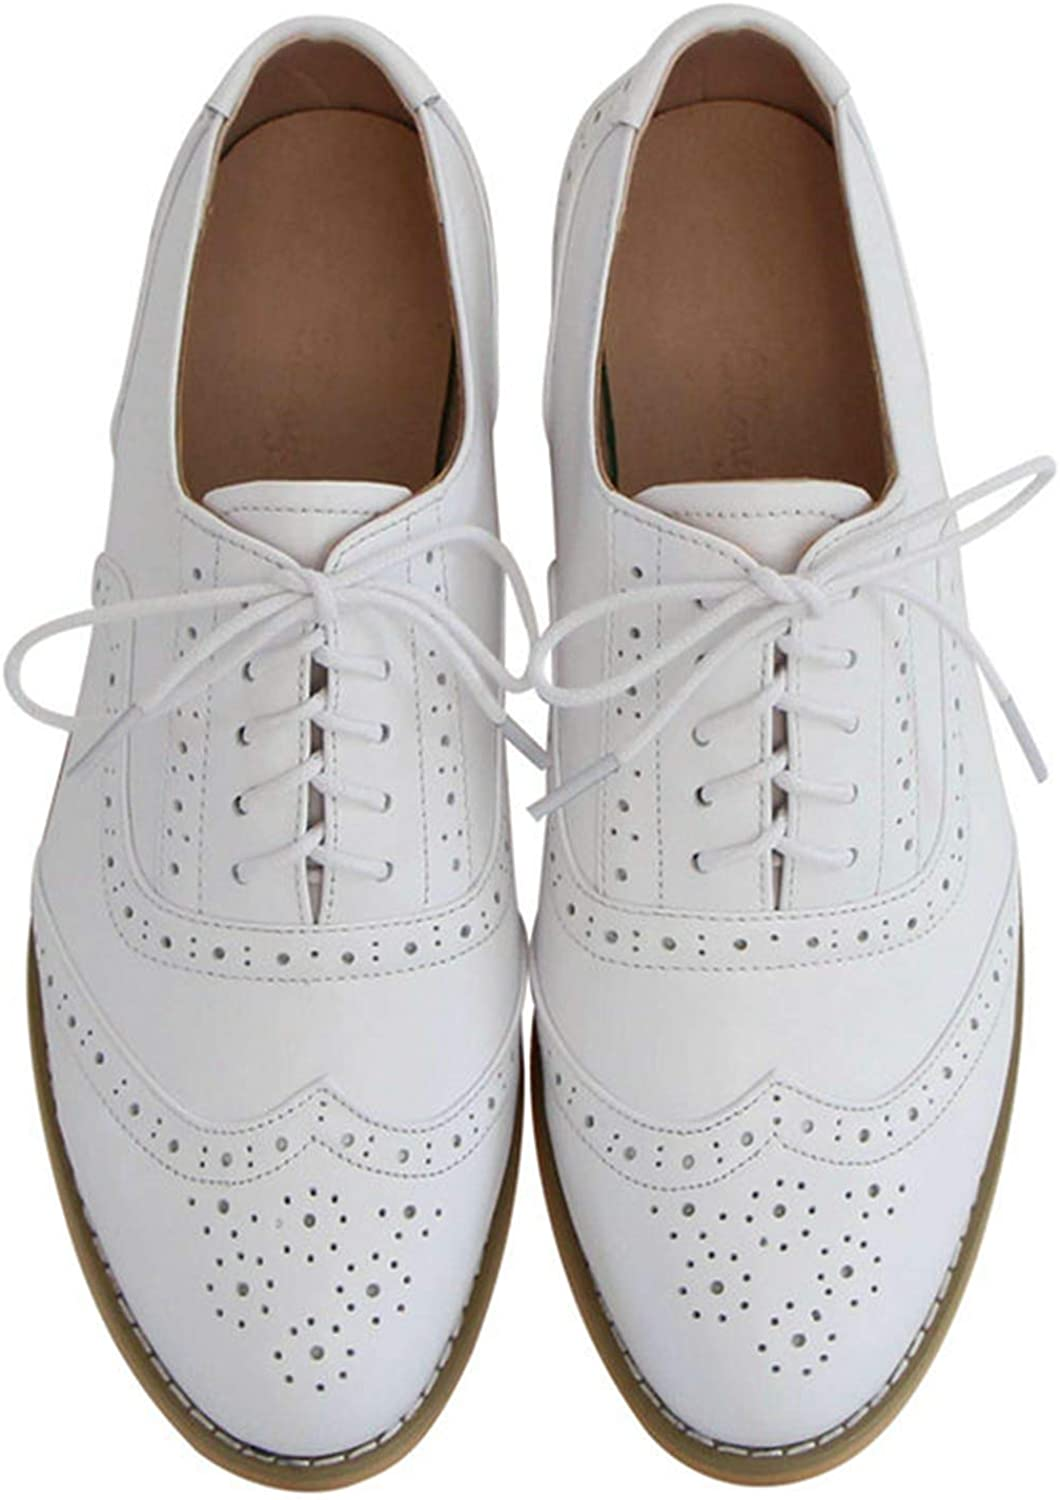 Big Size 33-45 New Hot British Style Handmade Genuine Leather shoes College Oxford shoes for Women